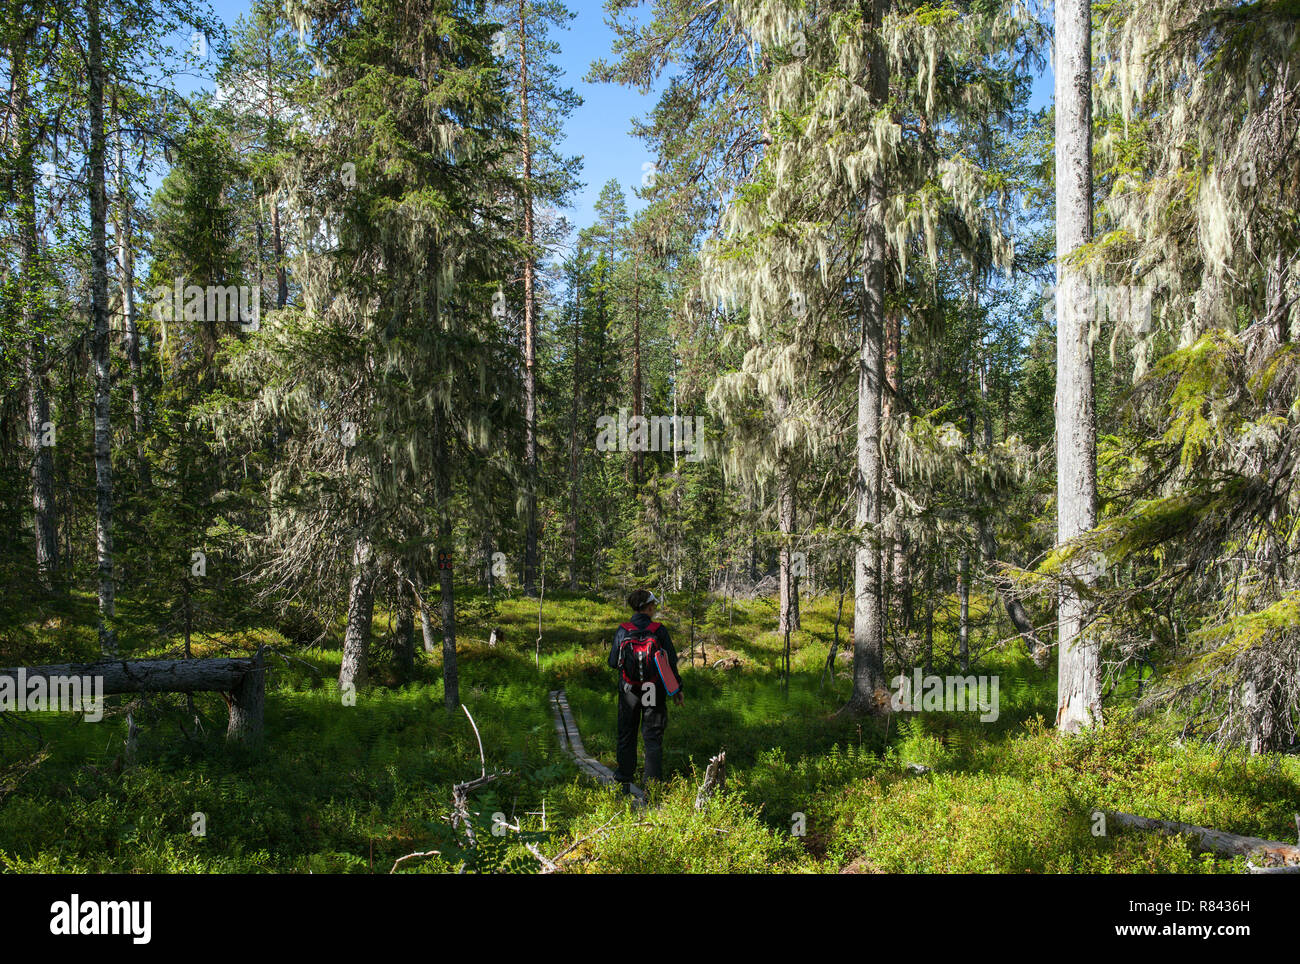 BJORNLANDET, SWEDEN ON AUGUST 06, 2018. Trees with lichen in a primeval forest, late seral forest. Editorial use. - Stock Image